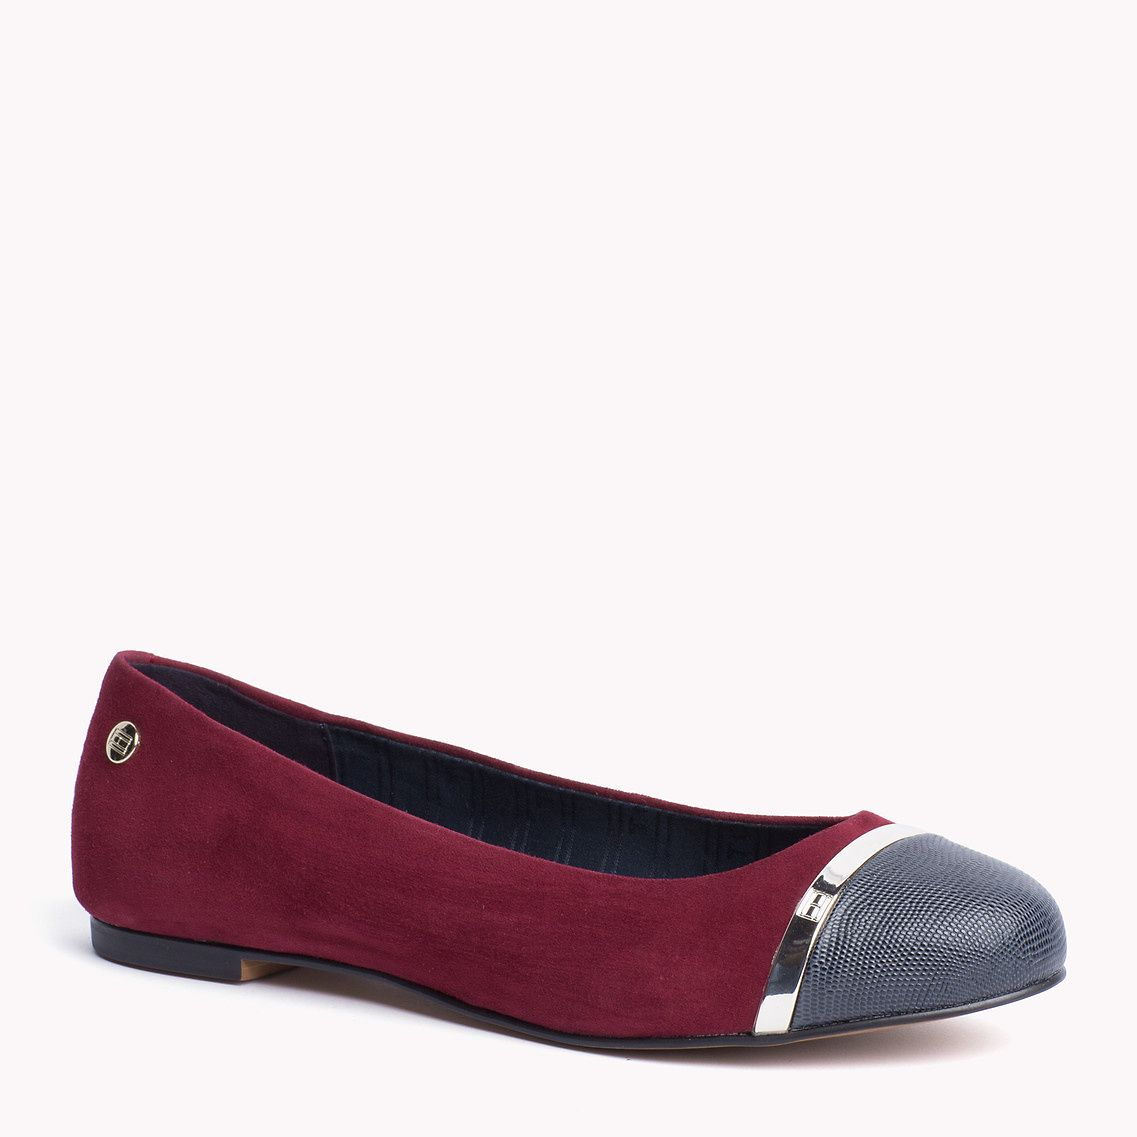 Tommy Hilfiger Anne Ballerina. Part of our Tommy Hilfiger women's footwear collection